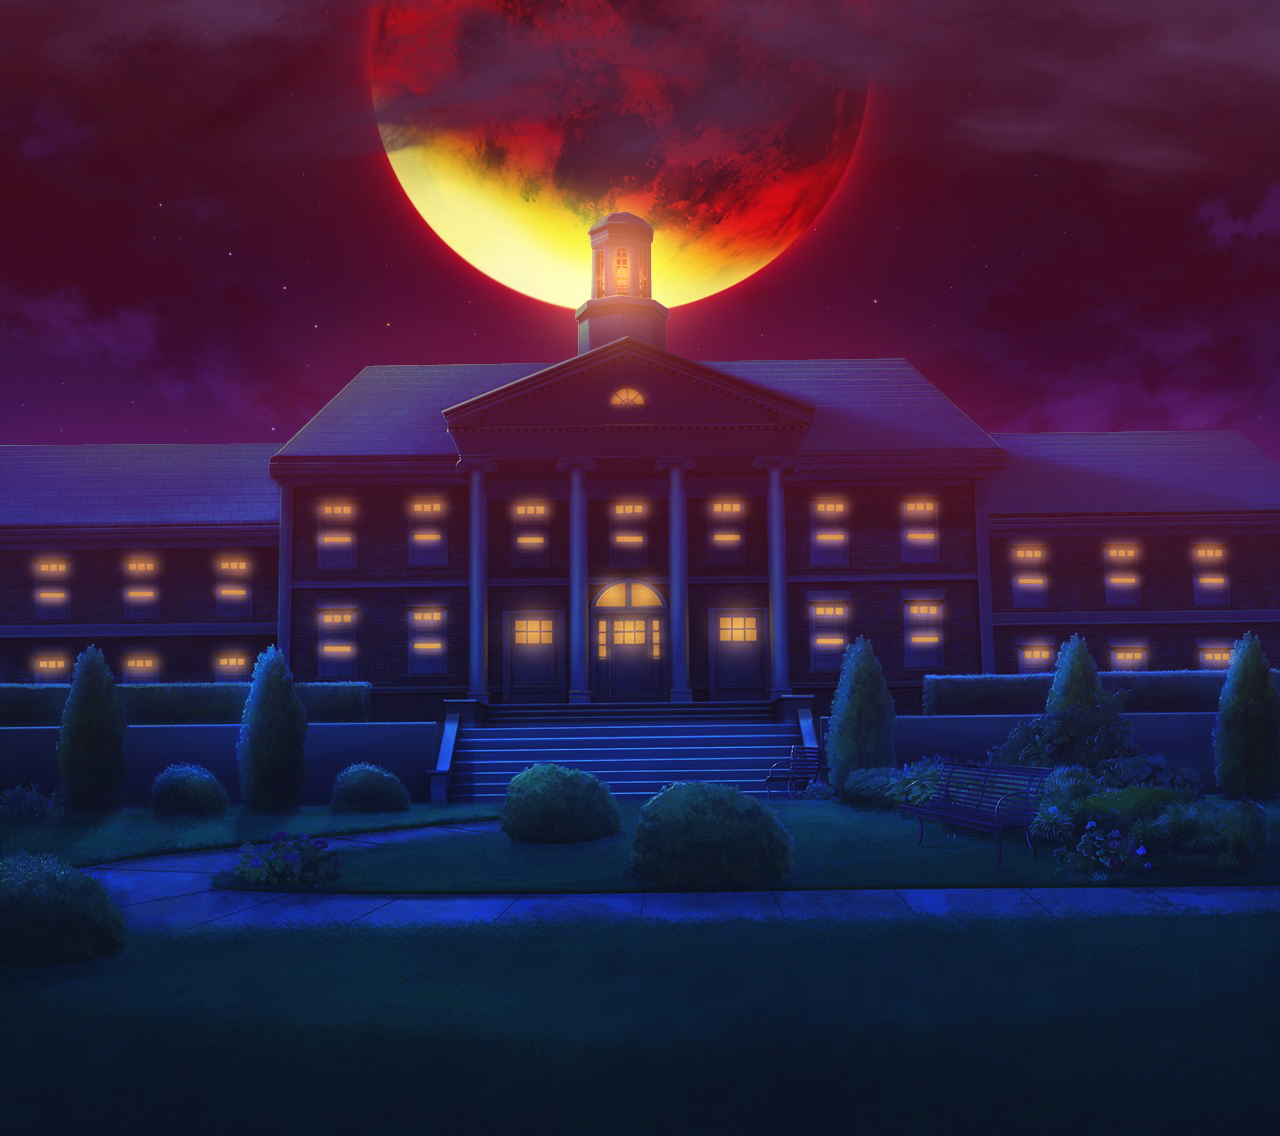 mansion_copy_by_excahm-dbn648u.png